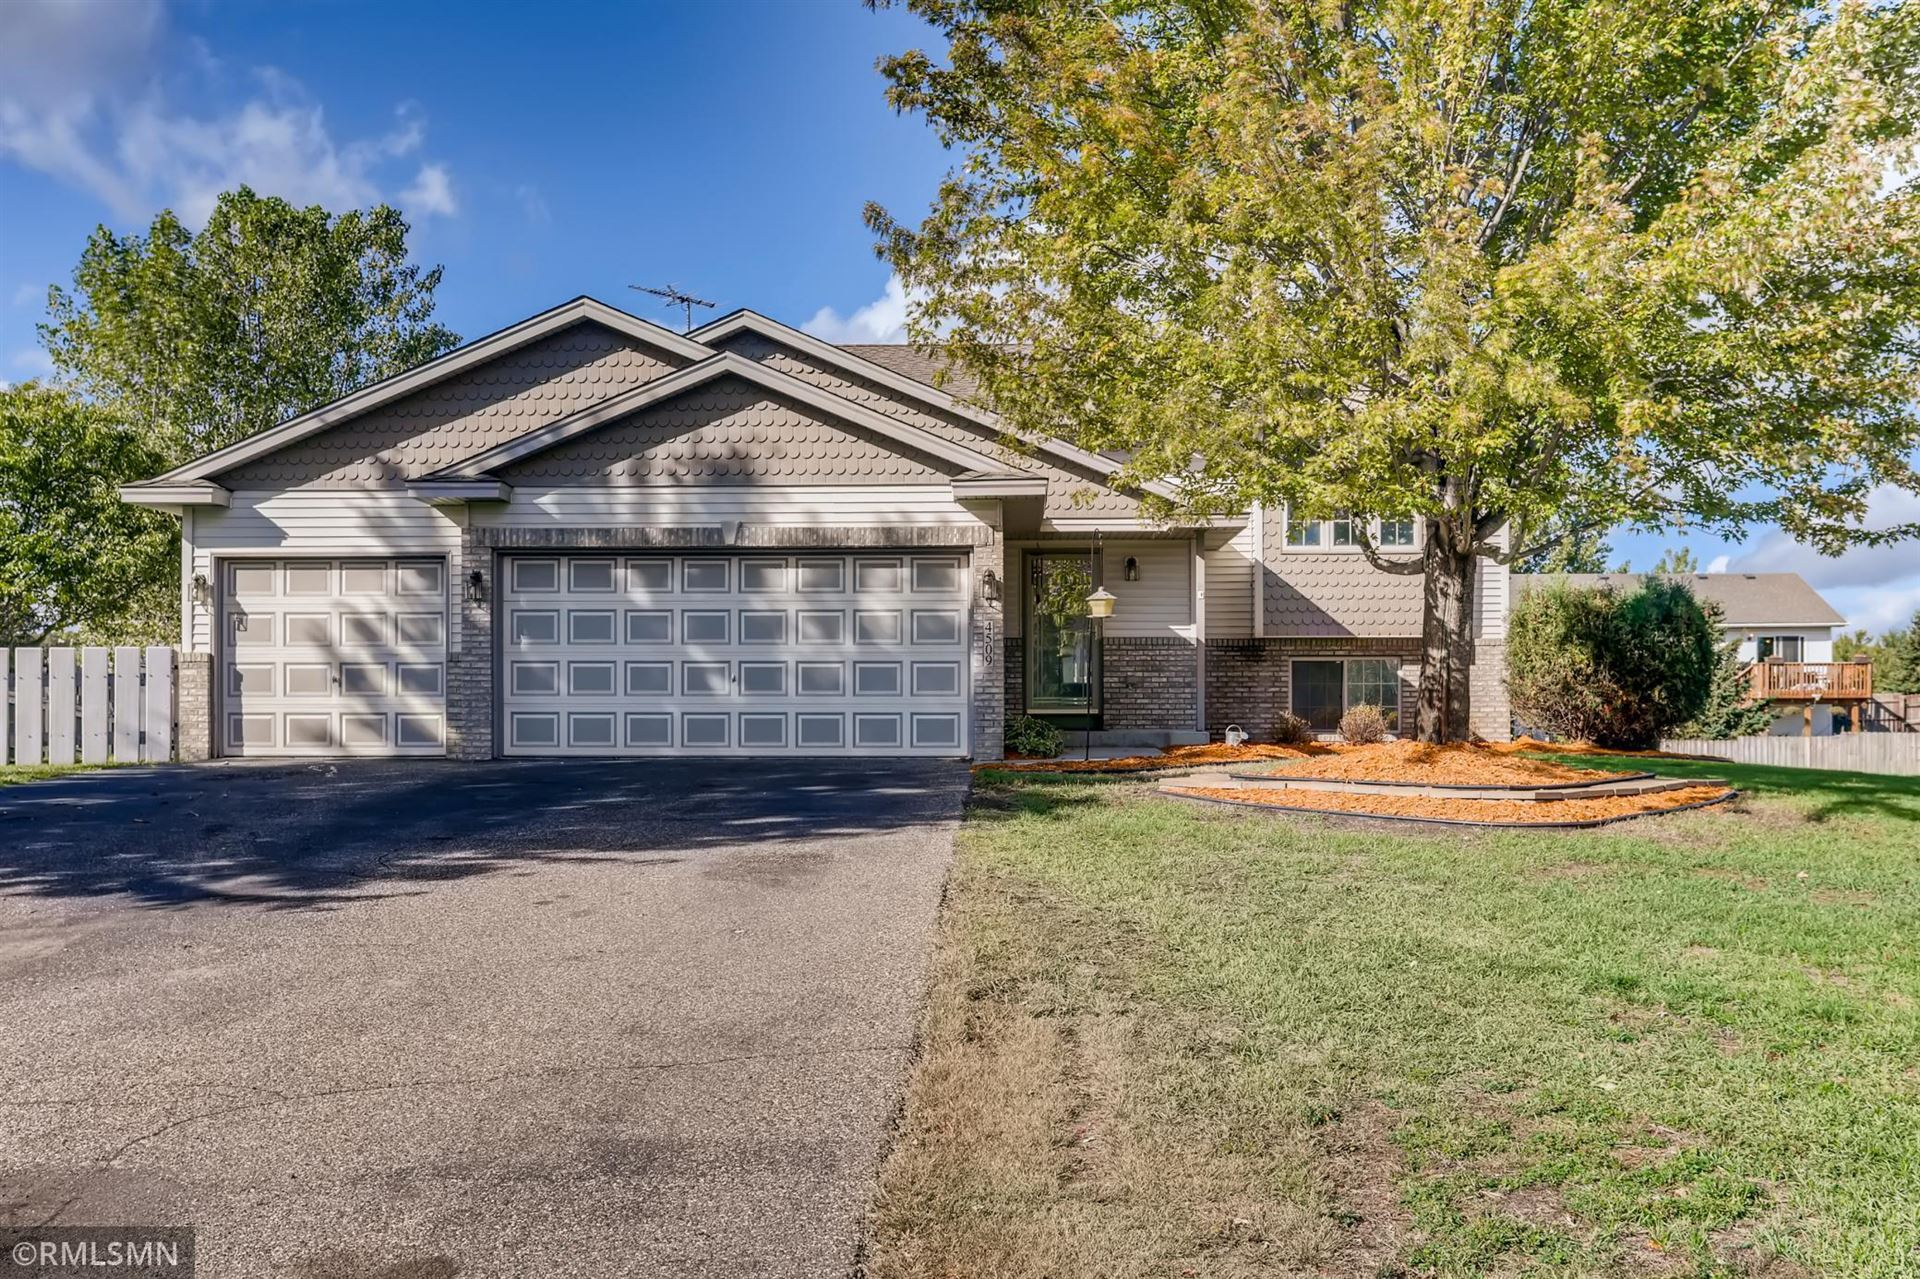 Photo of 4509 232nd Court NW, Saint Francis, MN 55070 (MLS # 6100924)